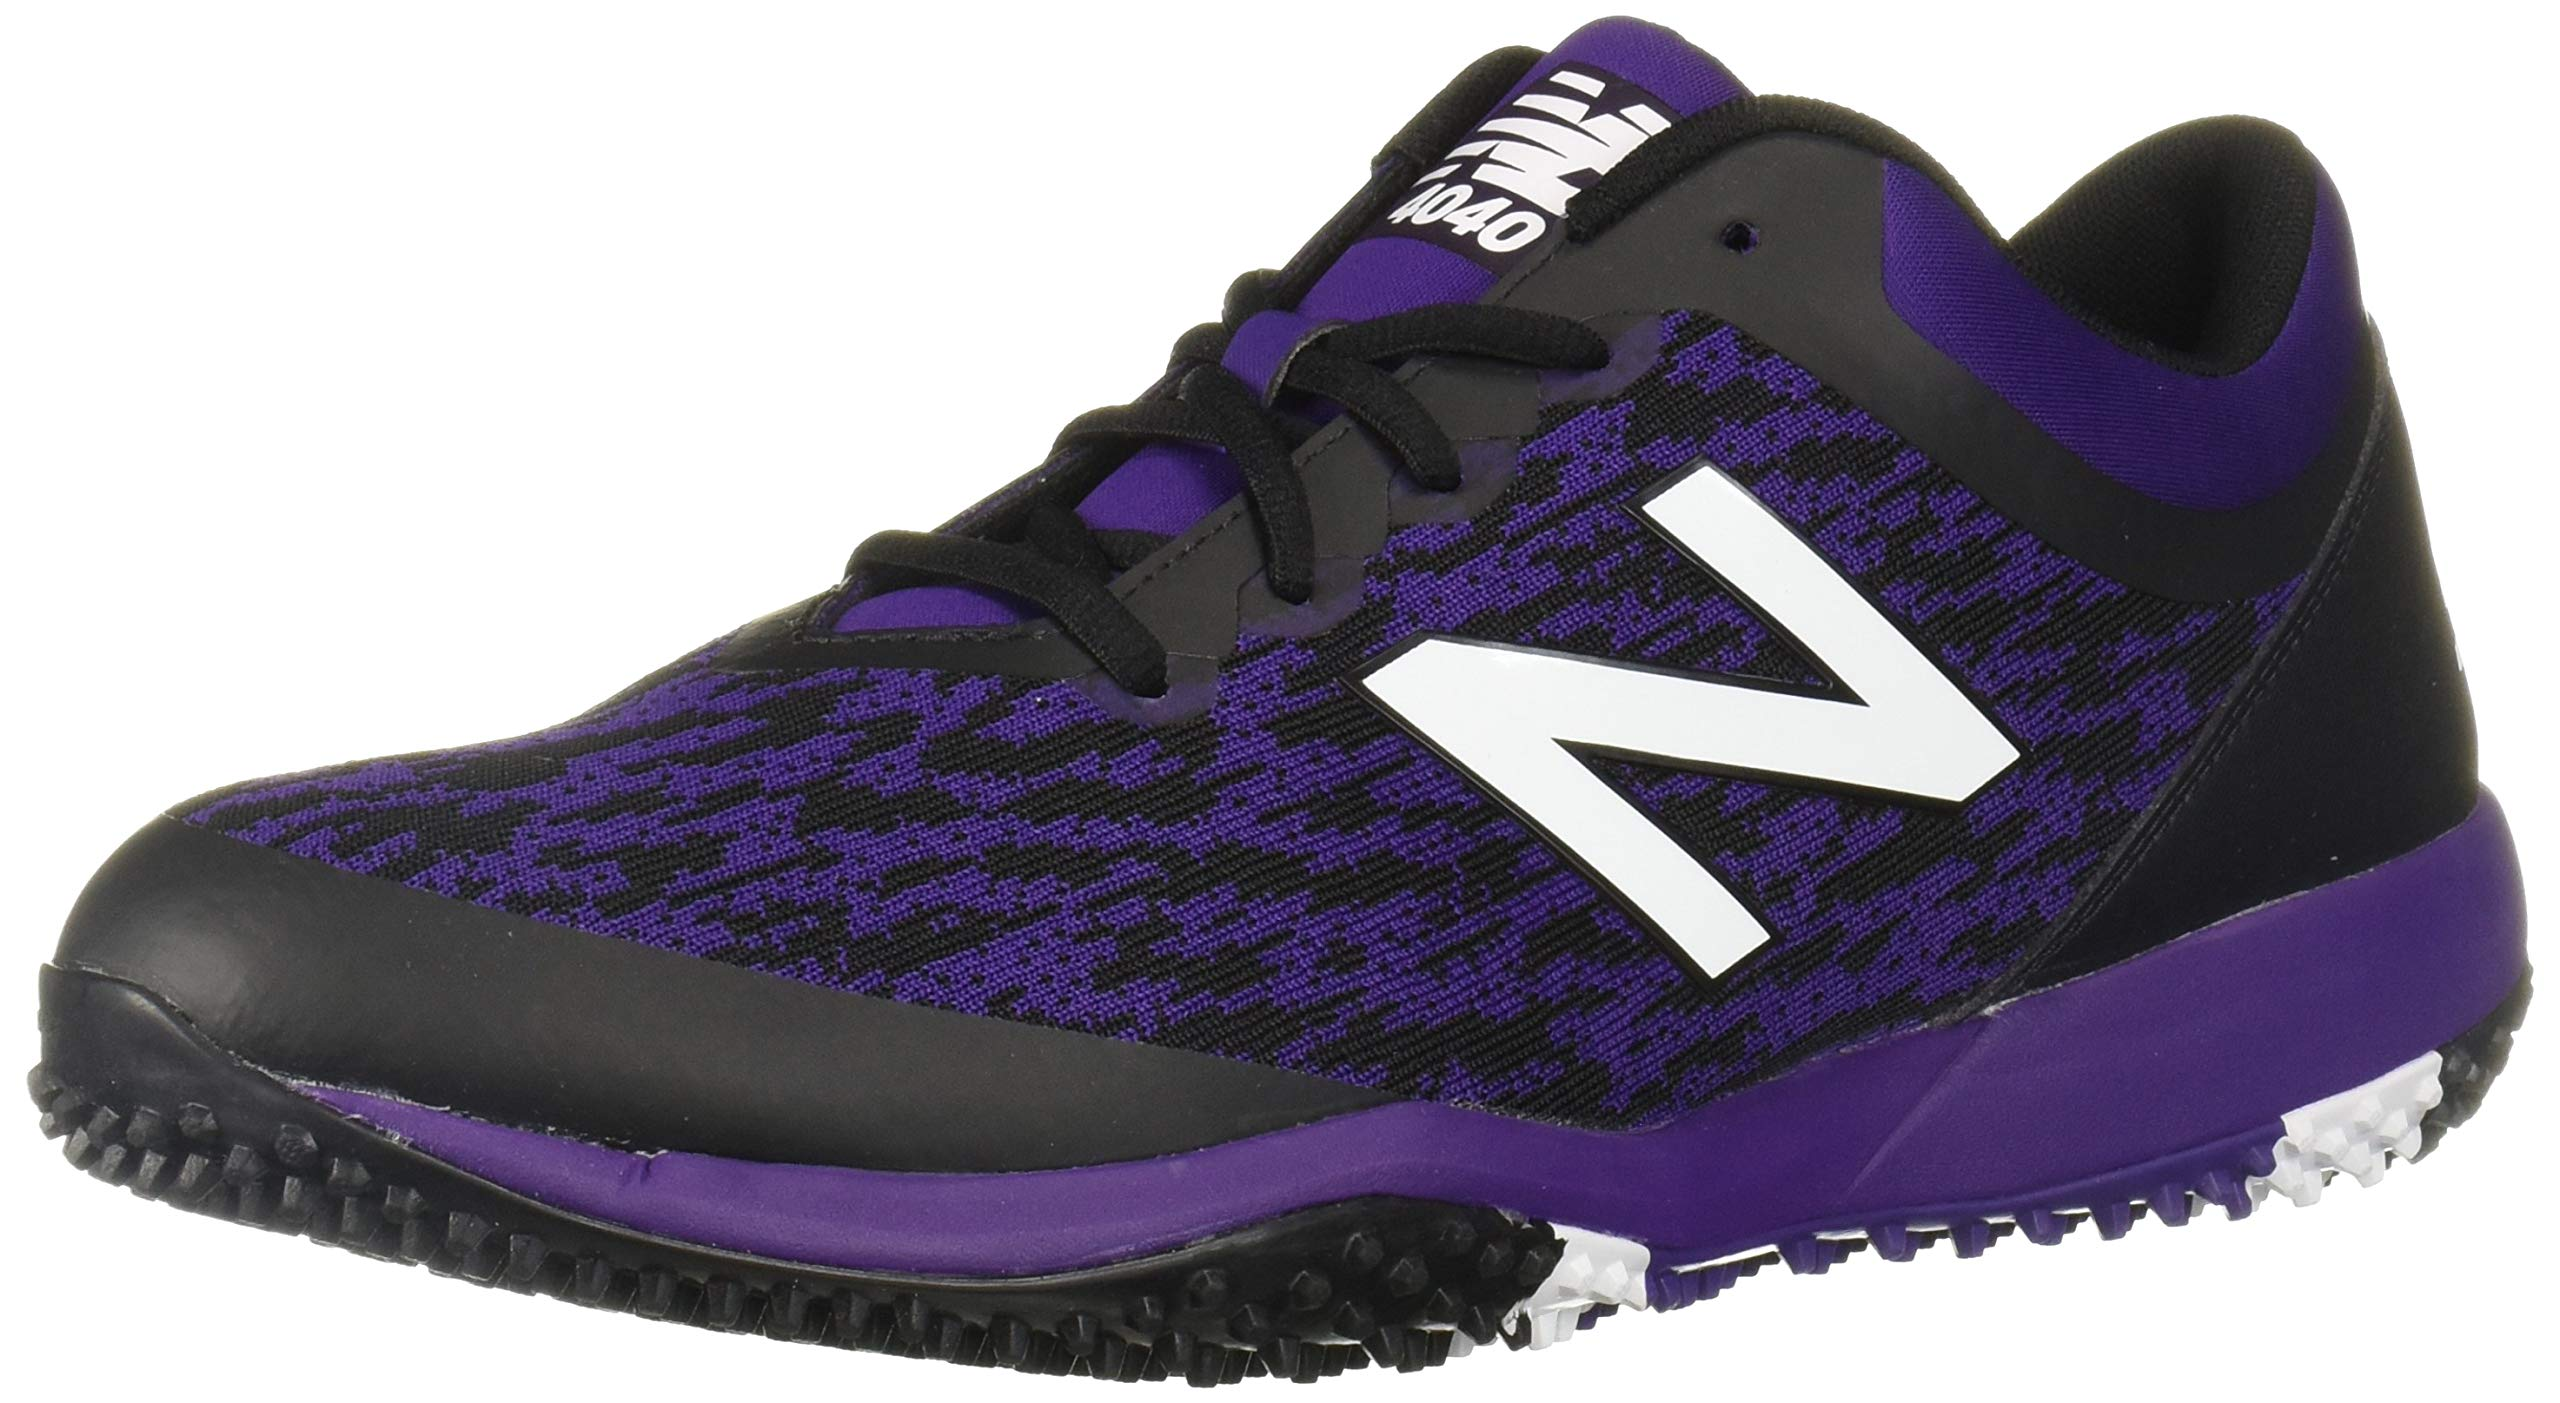 New Balance Men's 4040v5 Turf Track and Field Shoe, Black/Purple, 12 2E US by New Balance